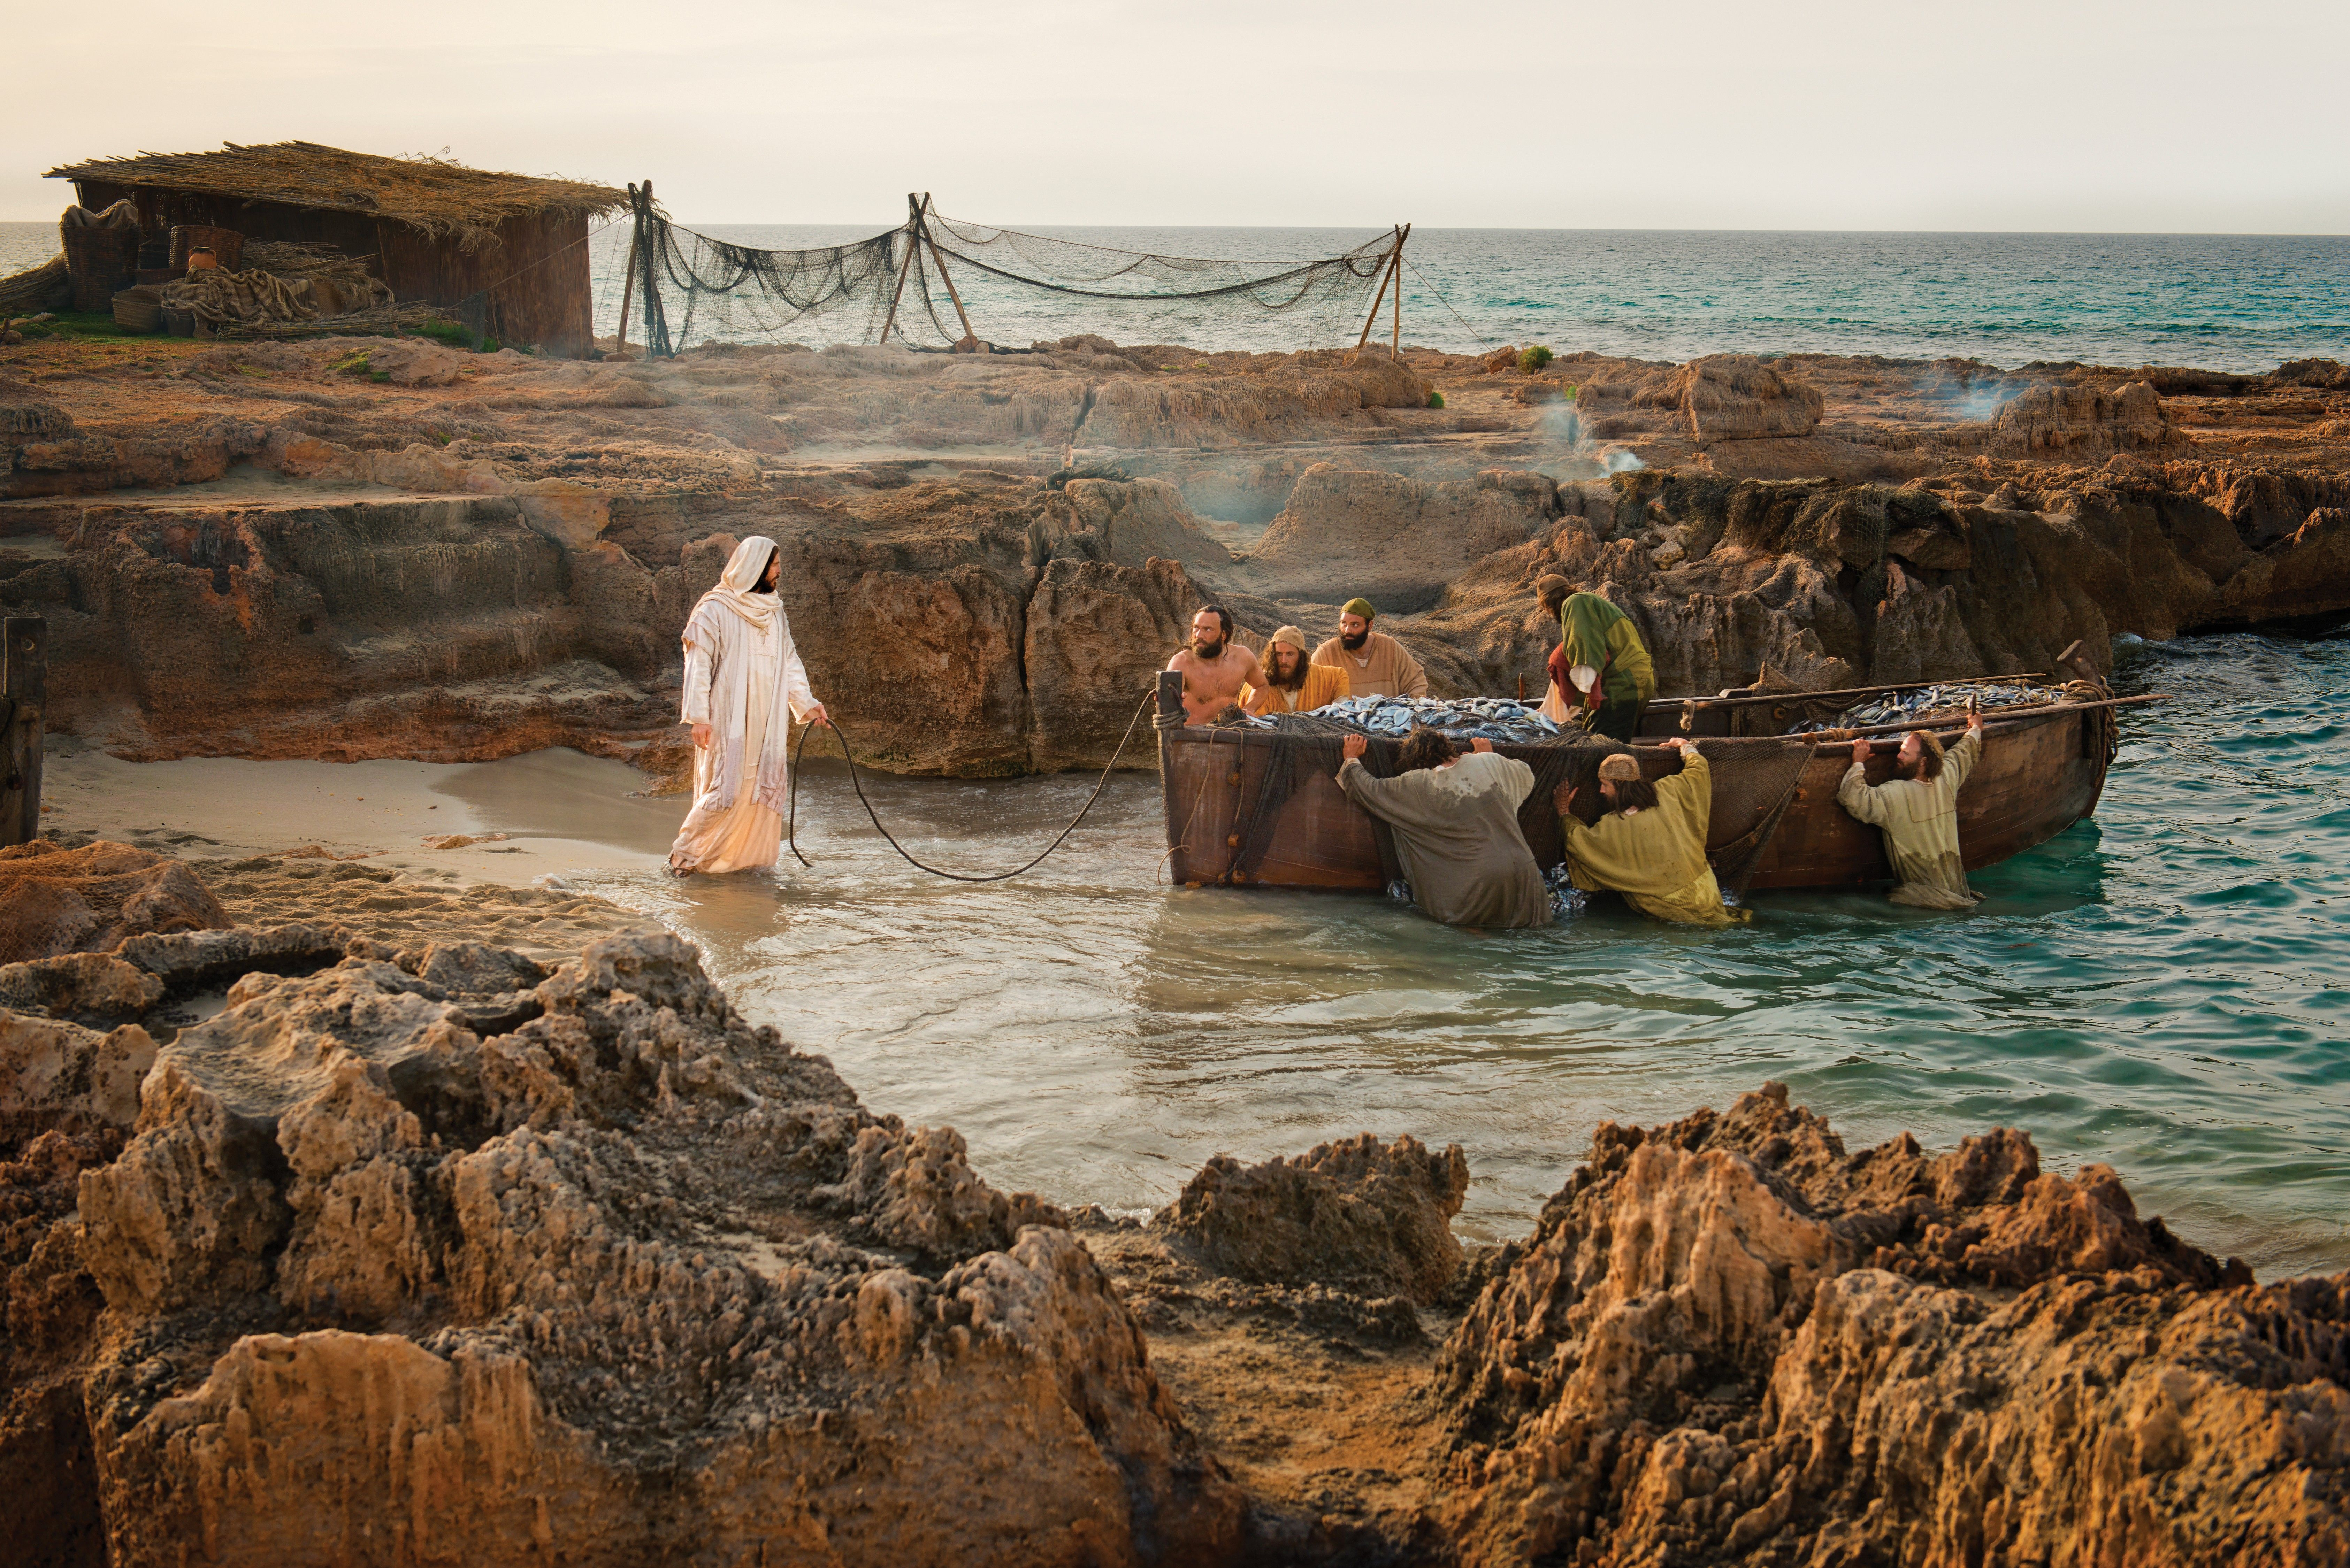 Christ standing in front of a boat that is being pushed by fishermen.